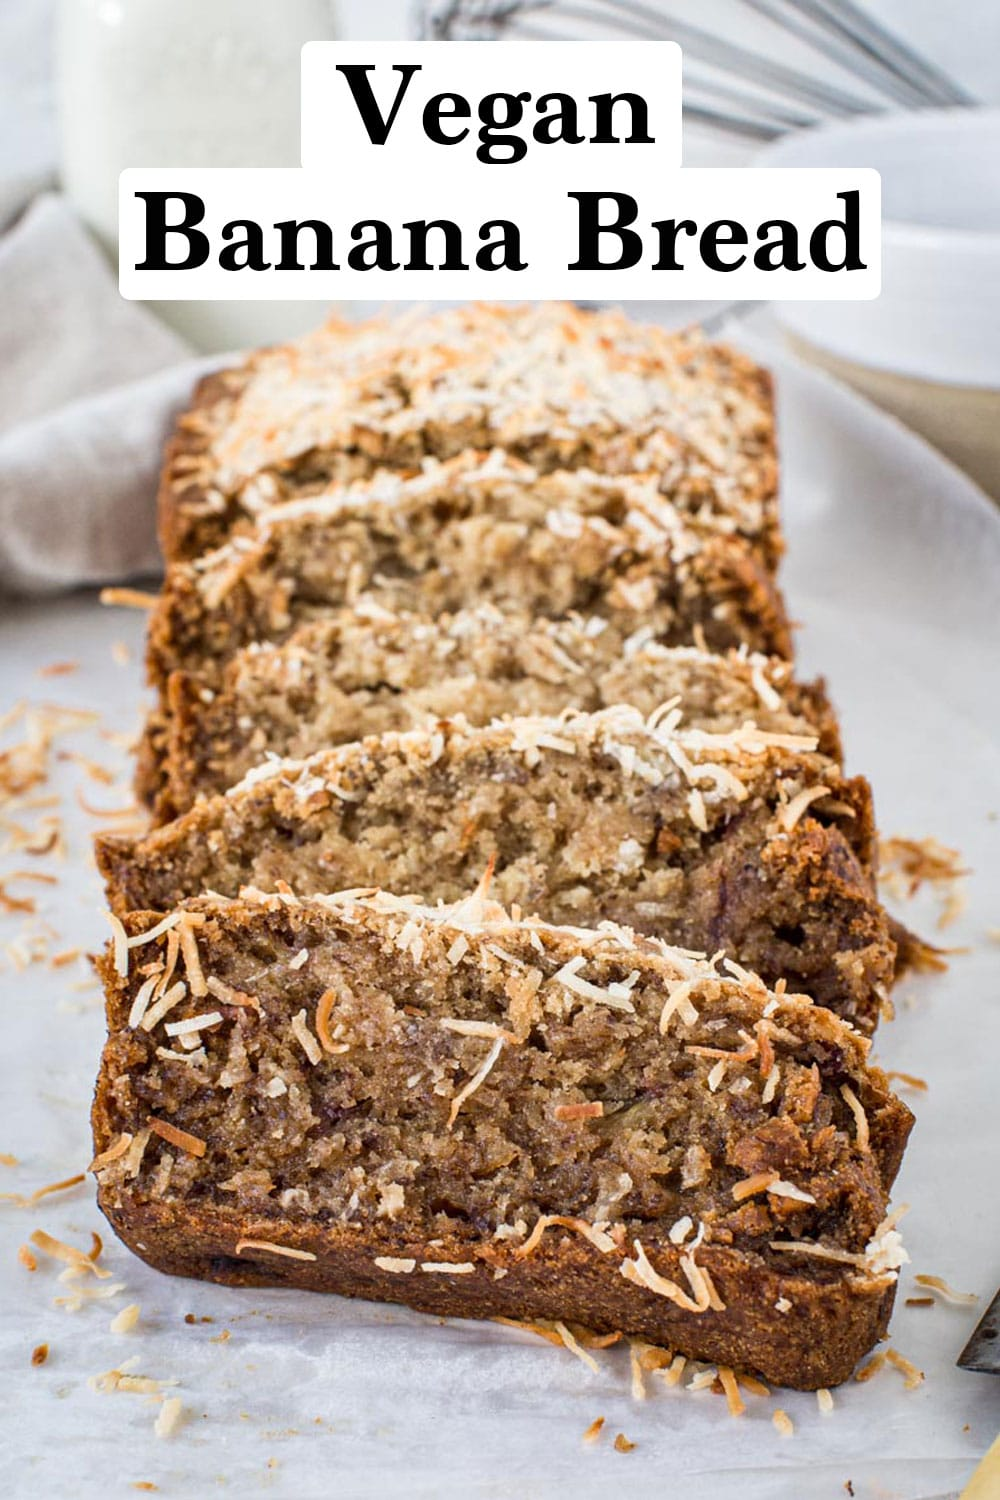 Sliced vegan banana bread topped with coconut flakes.